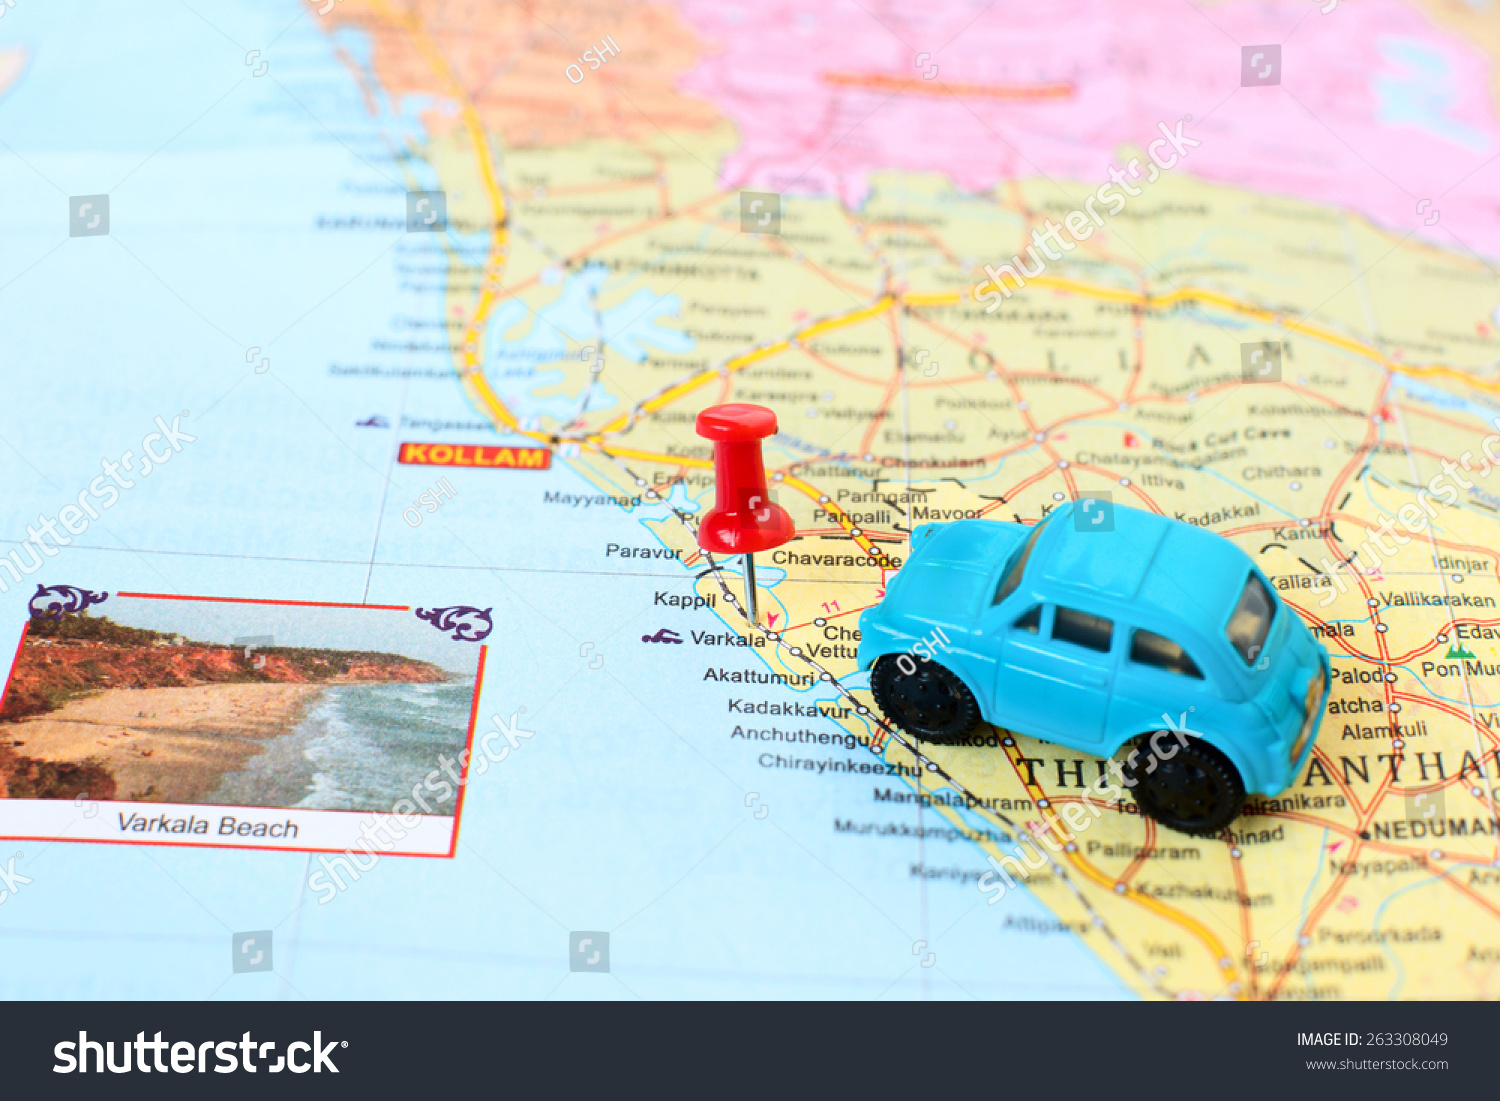 kerala map detail concept car journey stock photo (edit now